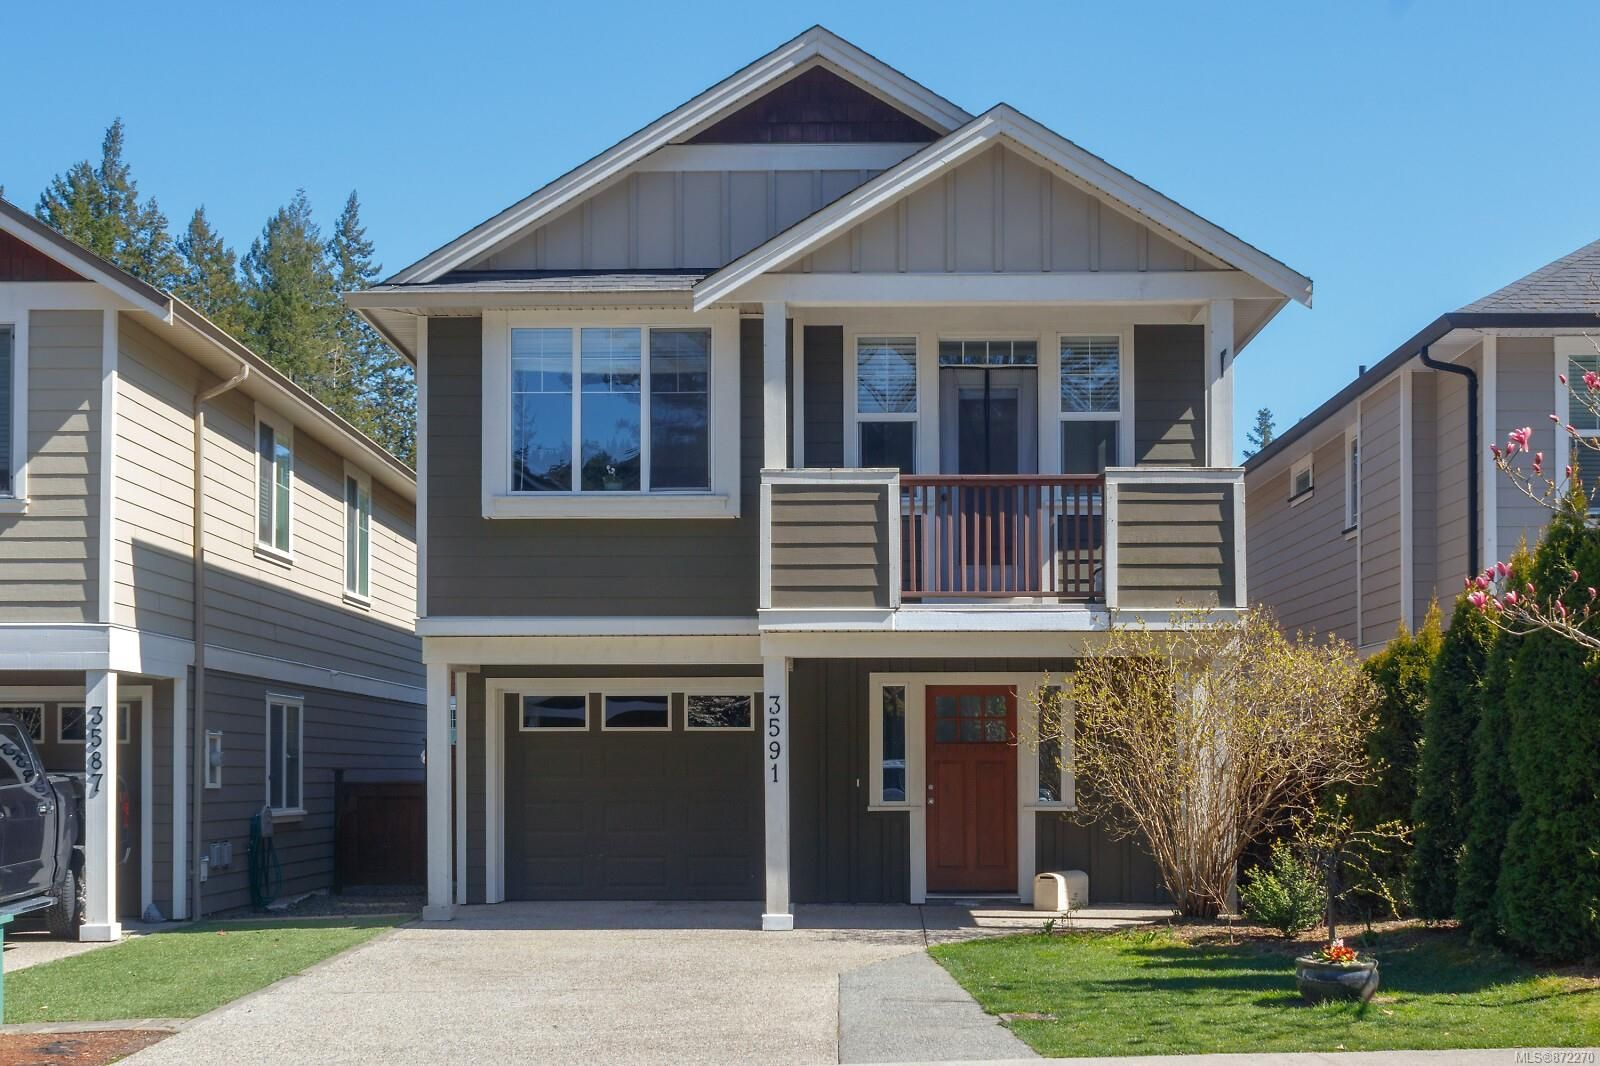 Main Photo: 3591 Vitality Rd in : La Happy Valley House for sale (Langford)  : MLS®# 872270